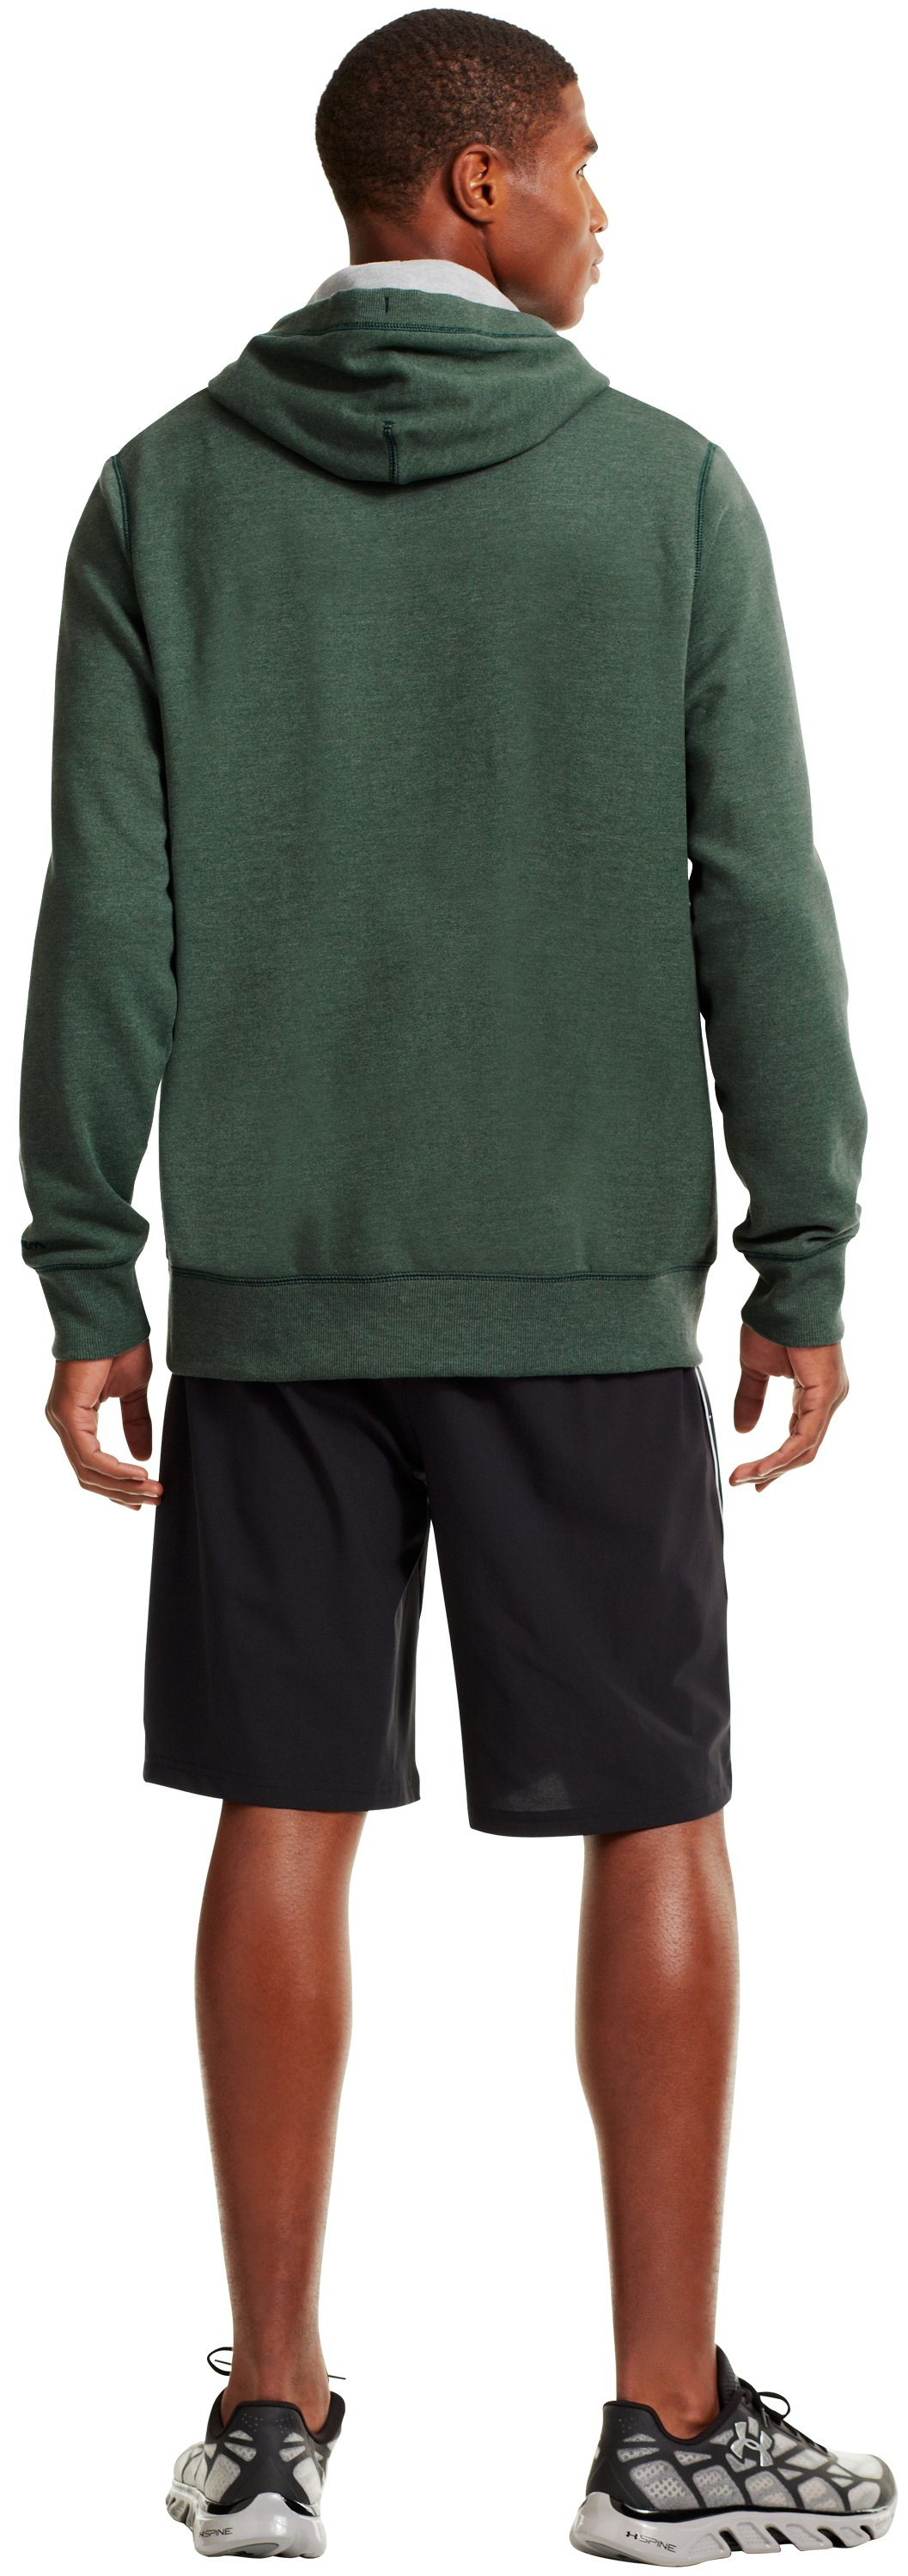 Men's South Florida Under Armour® Legacy Hoodie, Forest Green, Back